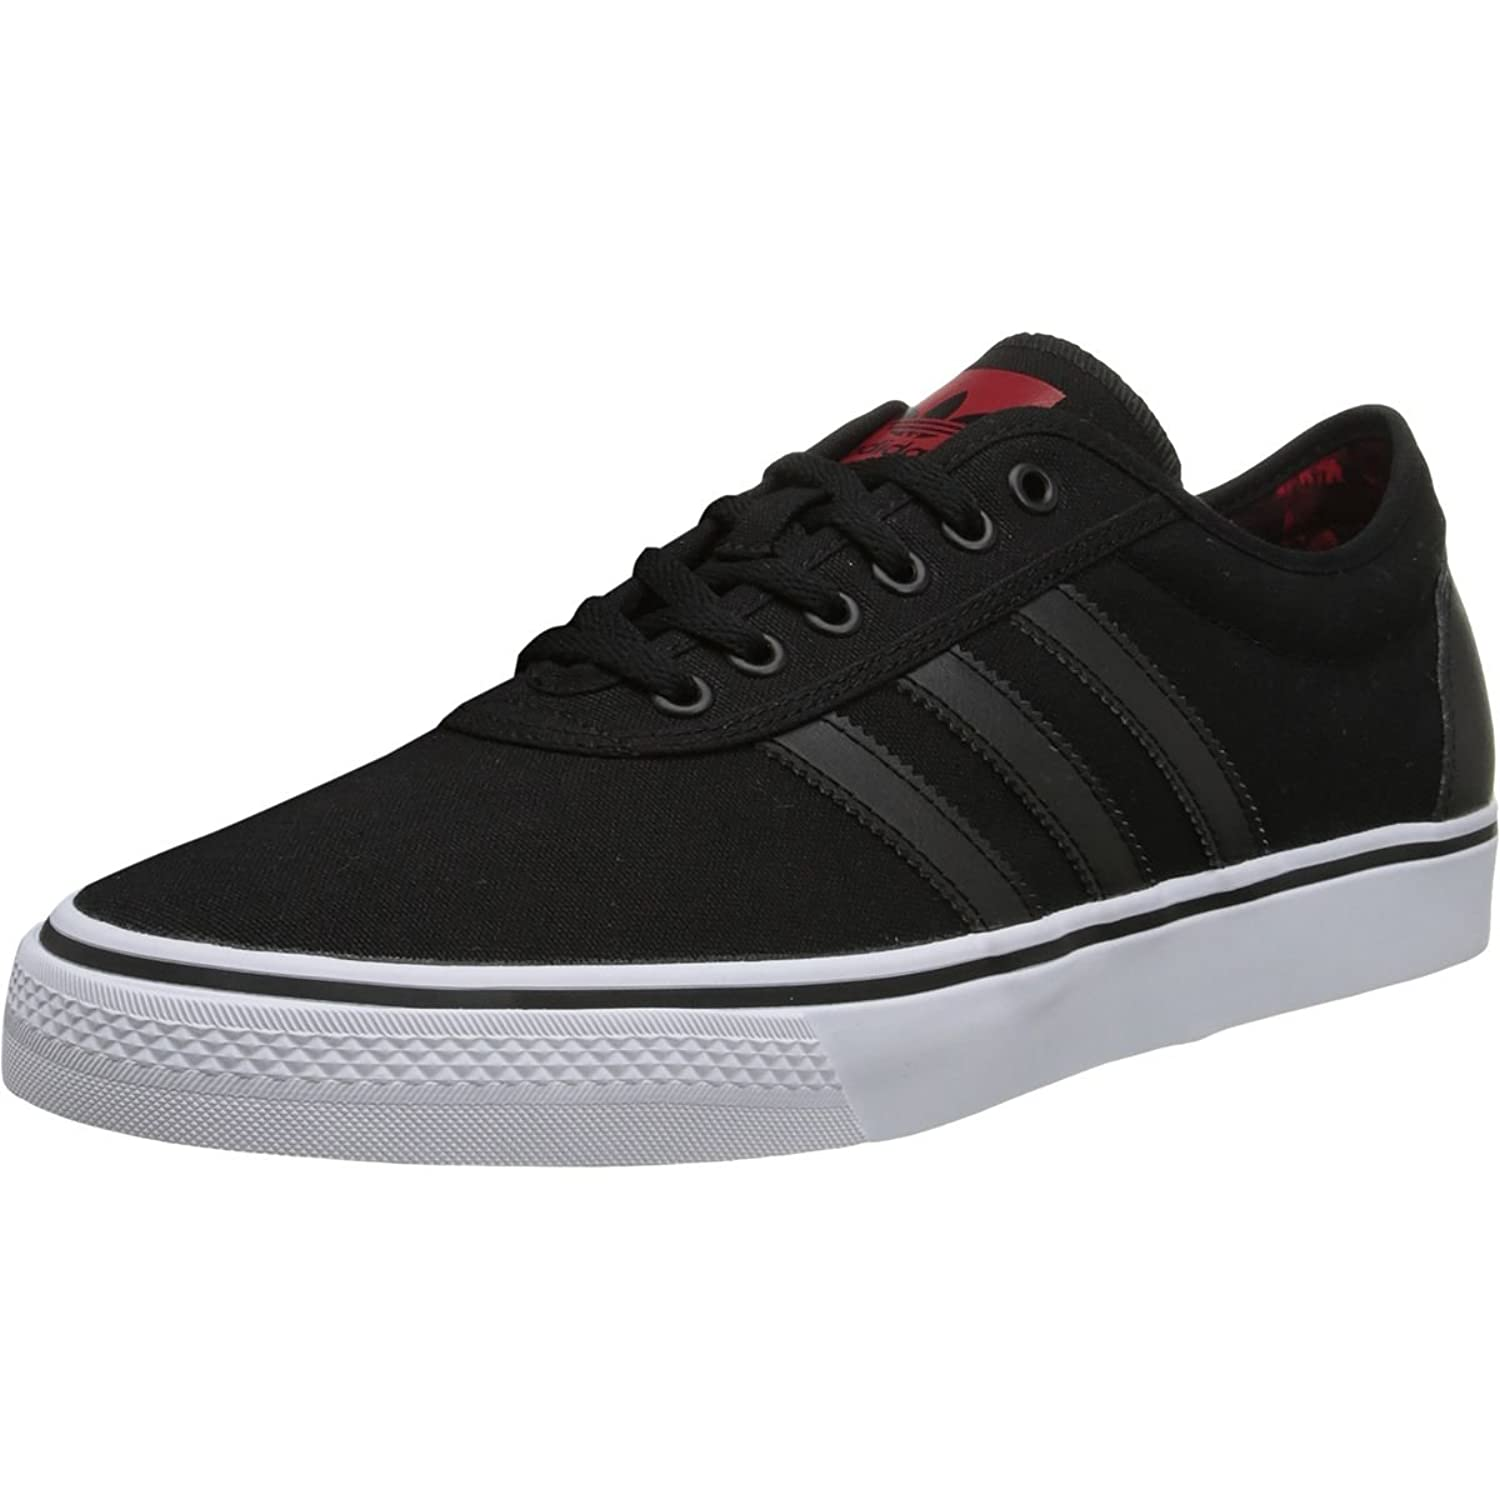 Adidas Adi-Ease Black / Red Skate Shoes